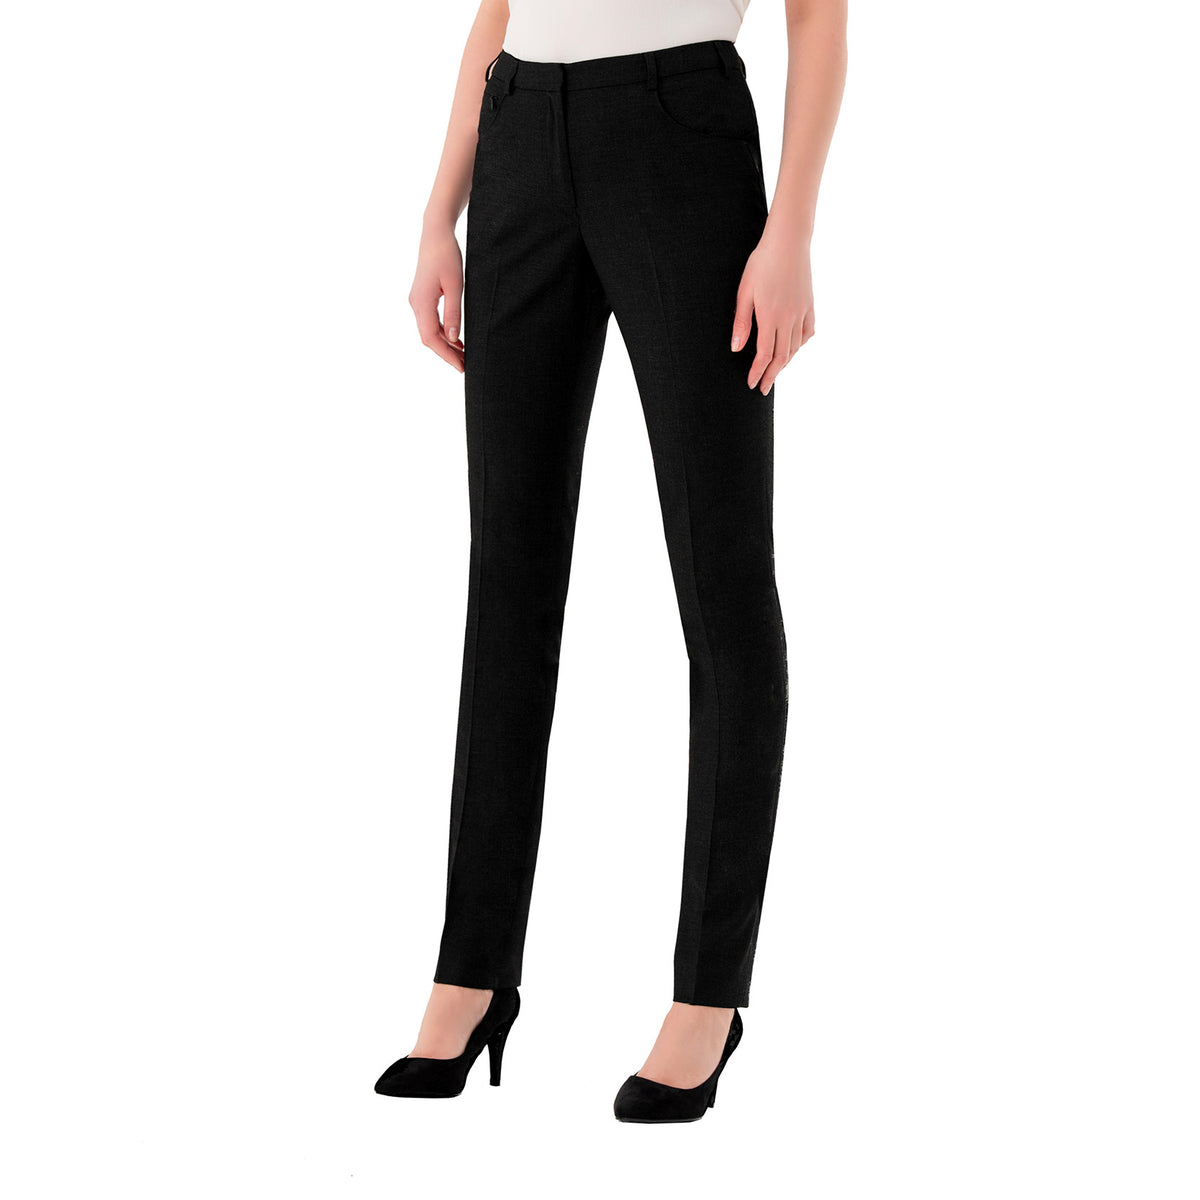 Pentonville Ladies Trousers Black